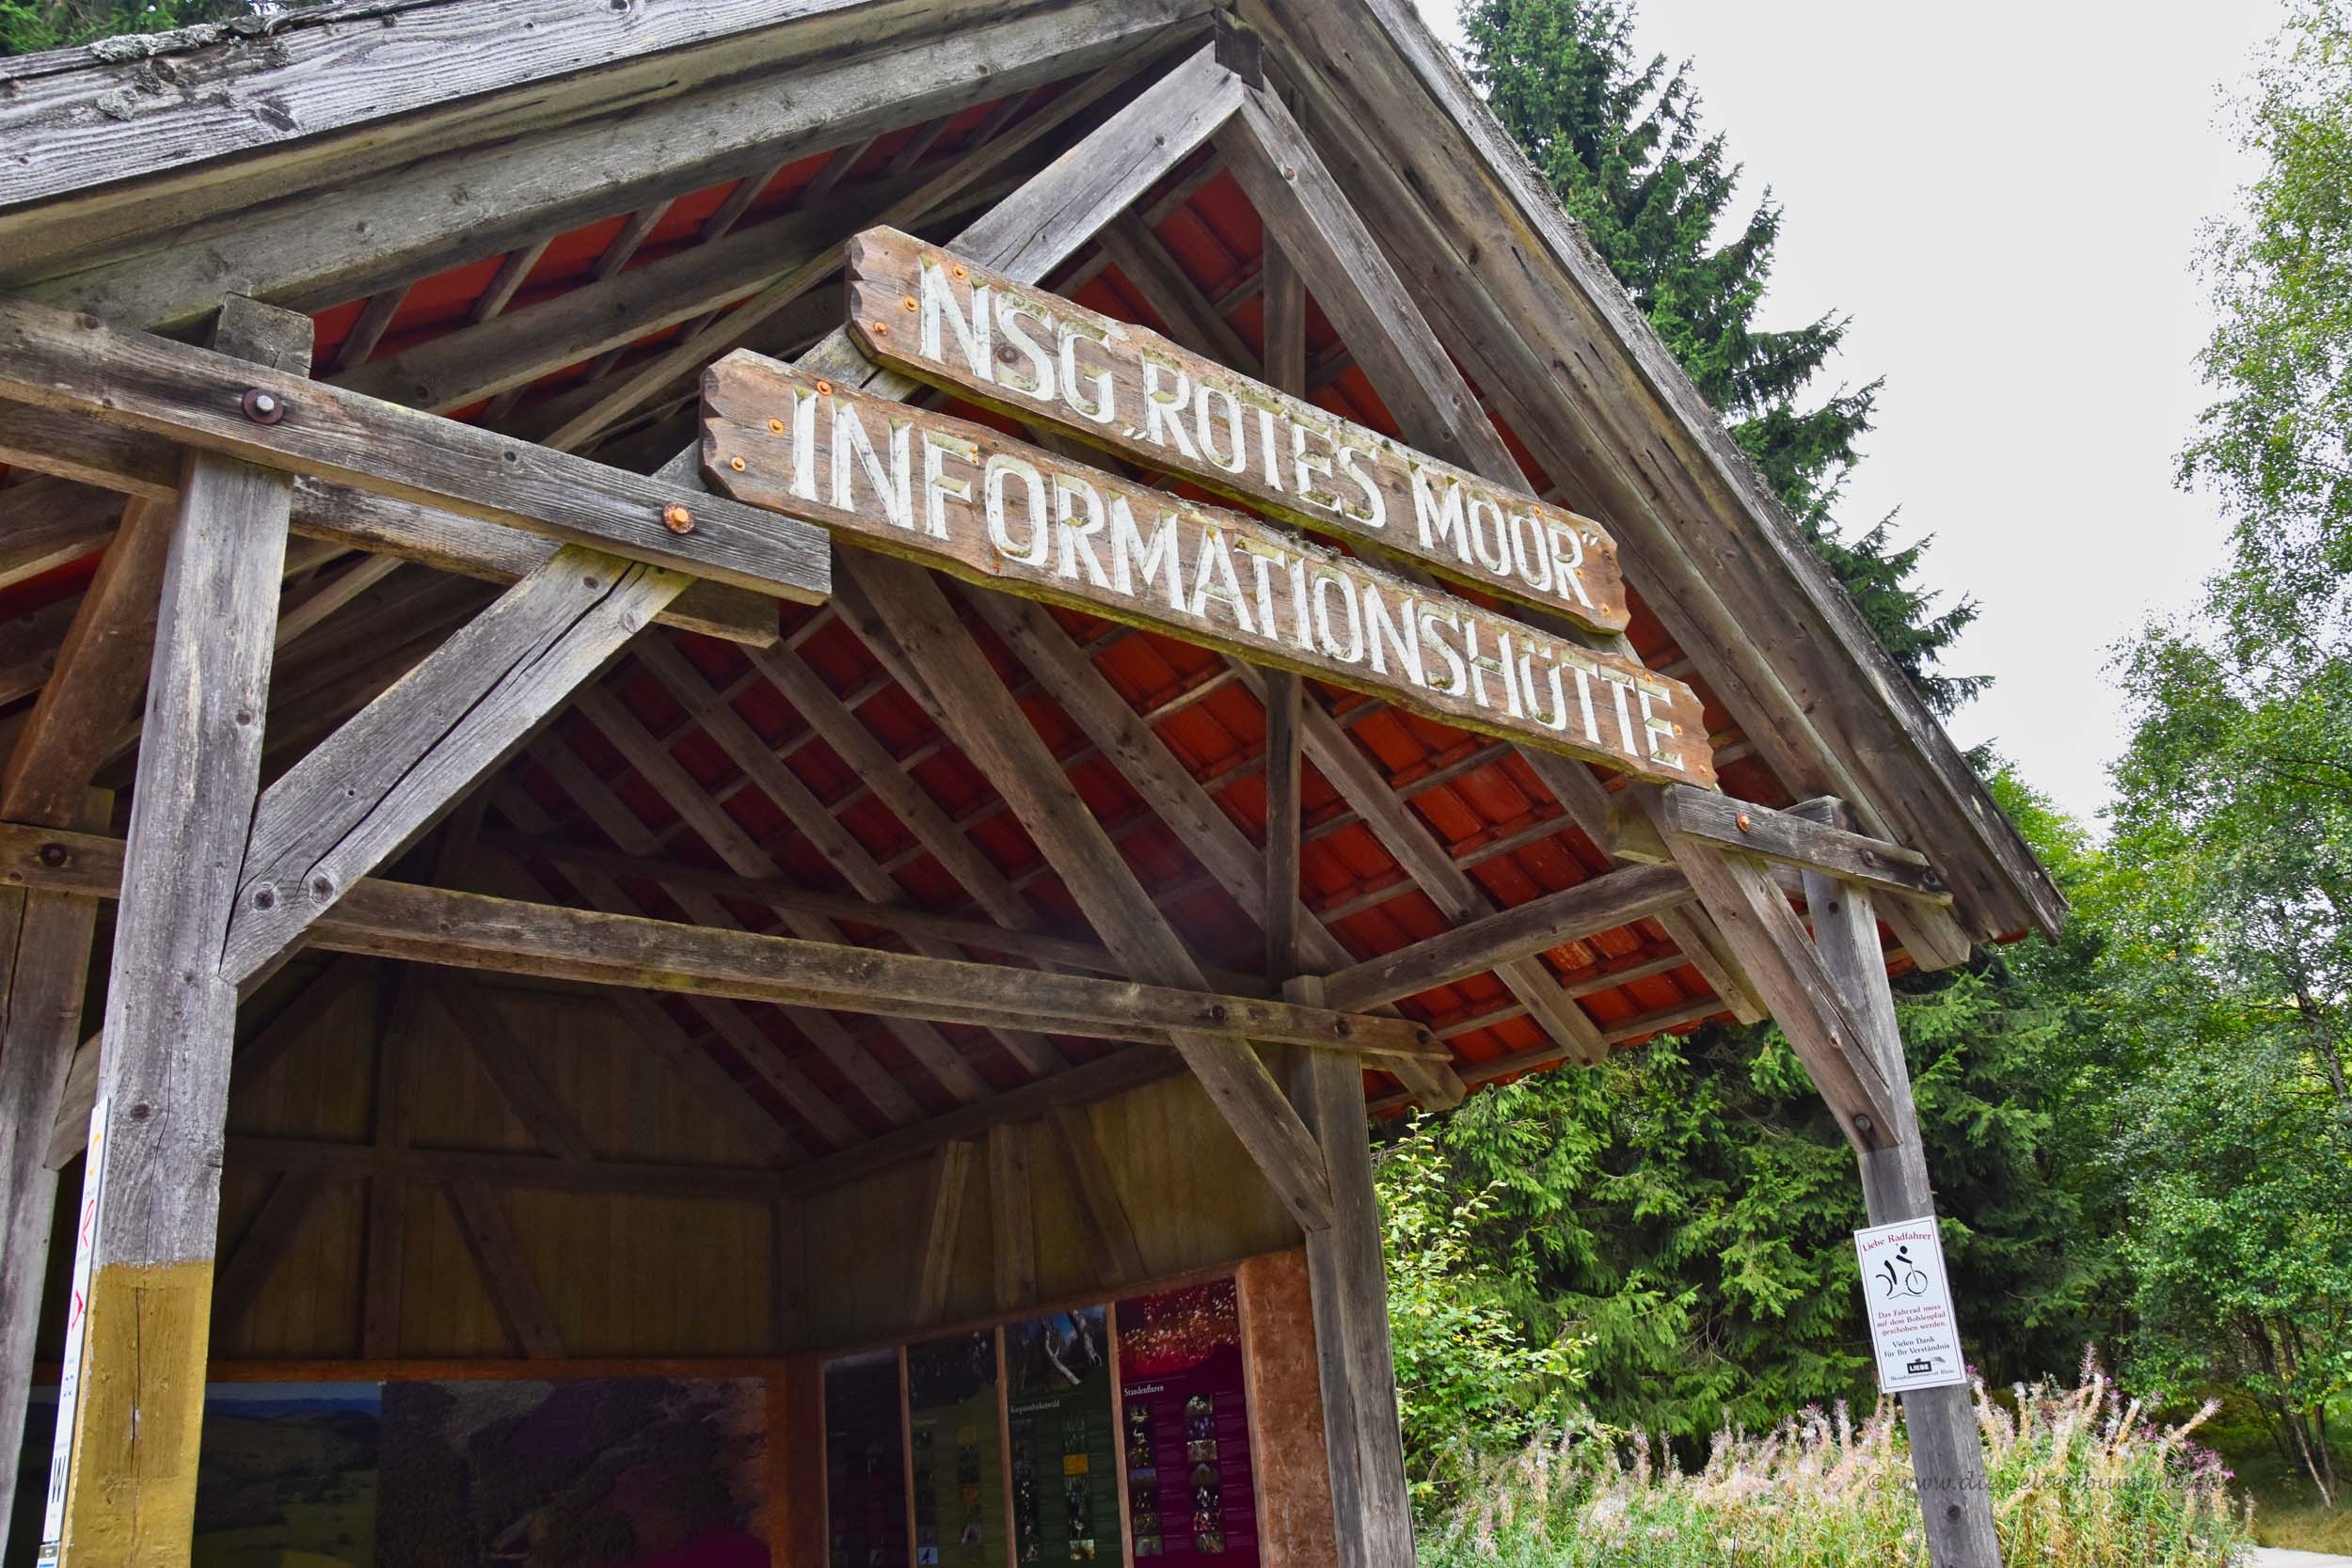 Info-Haus Rotes Moor